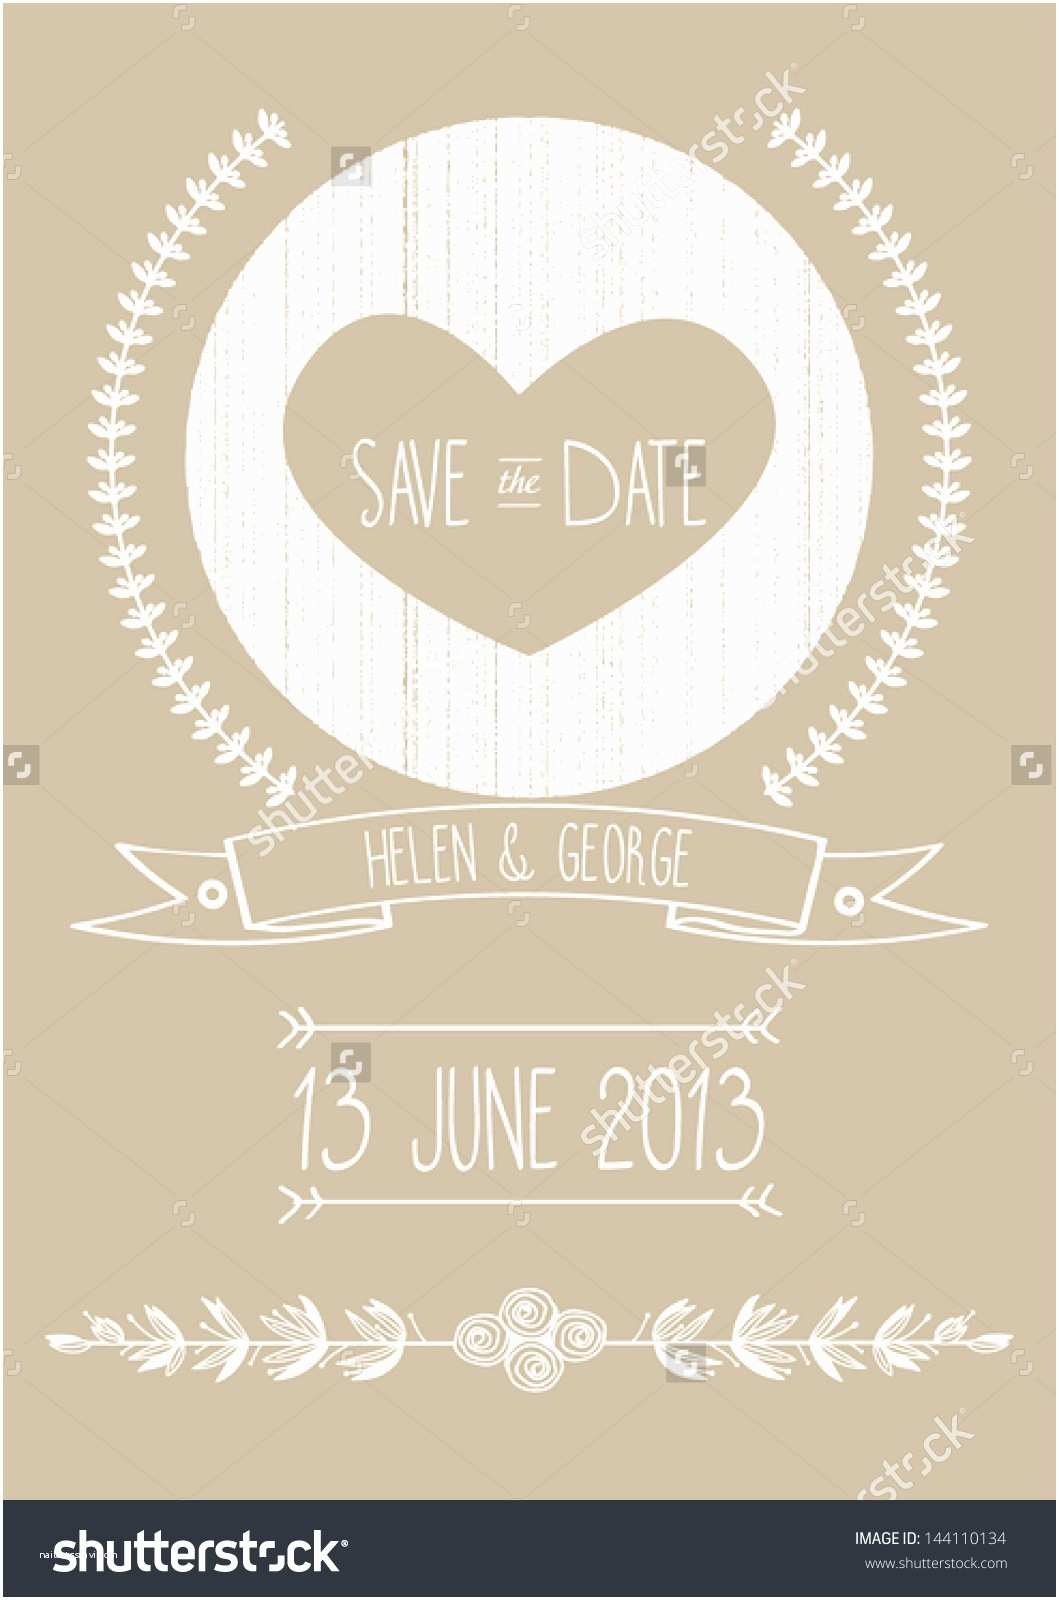 Difference Between Save the Date and Wedding Invitation Save the Date Templates